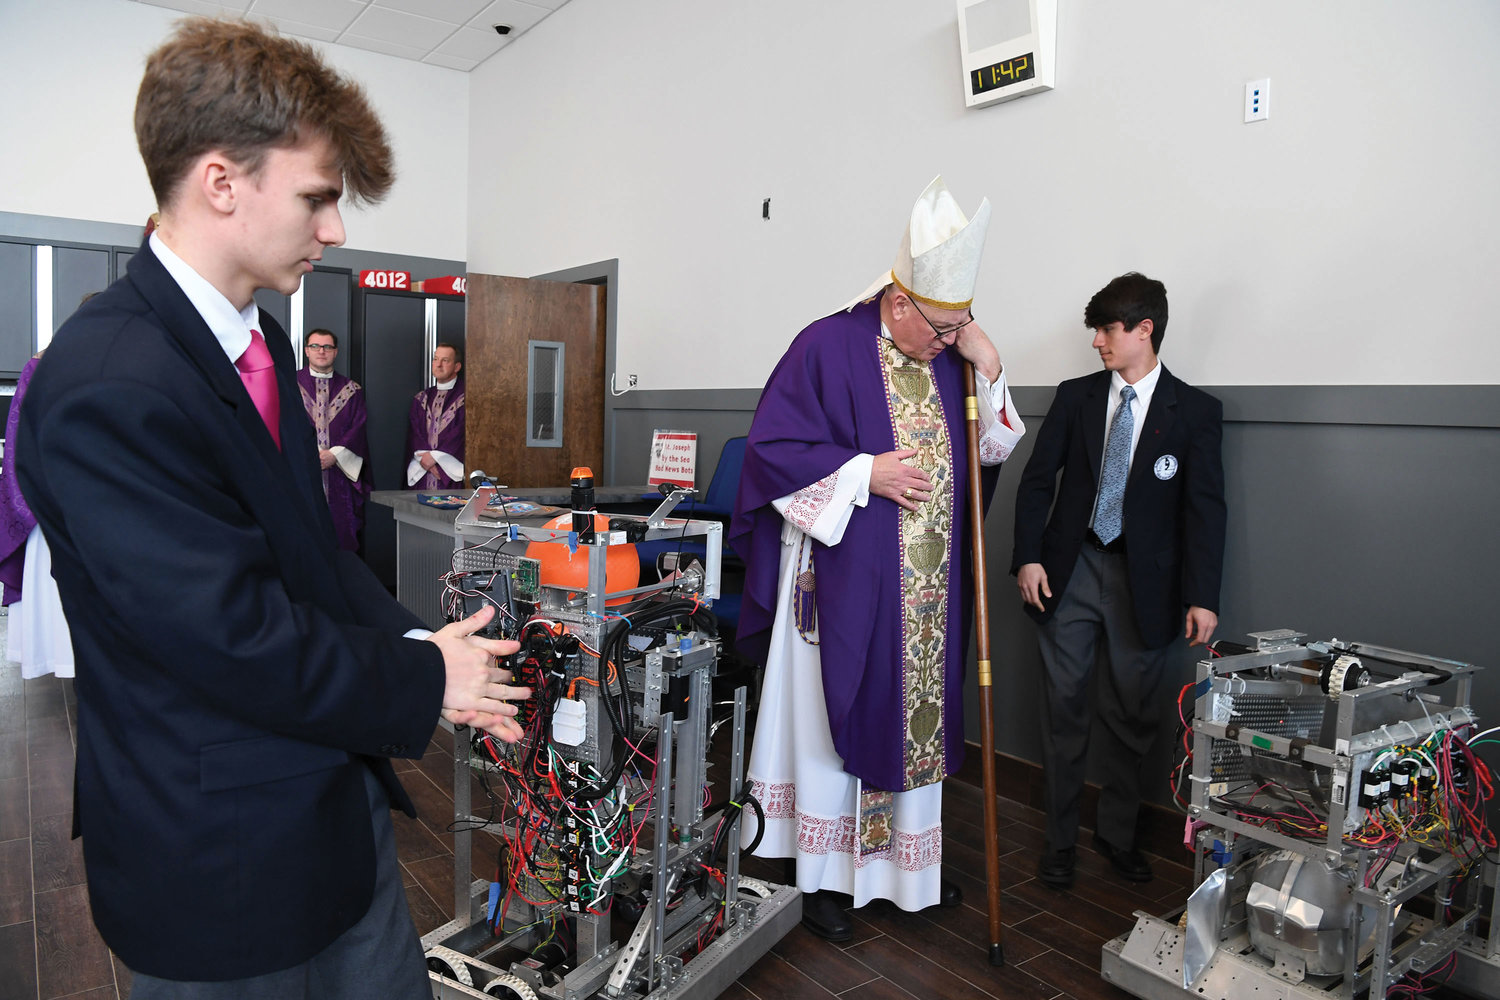 Cardinal Dolan takes a close look at robots in the new robotics classroom.